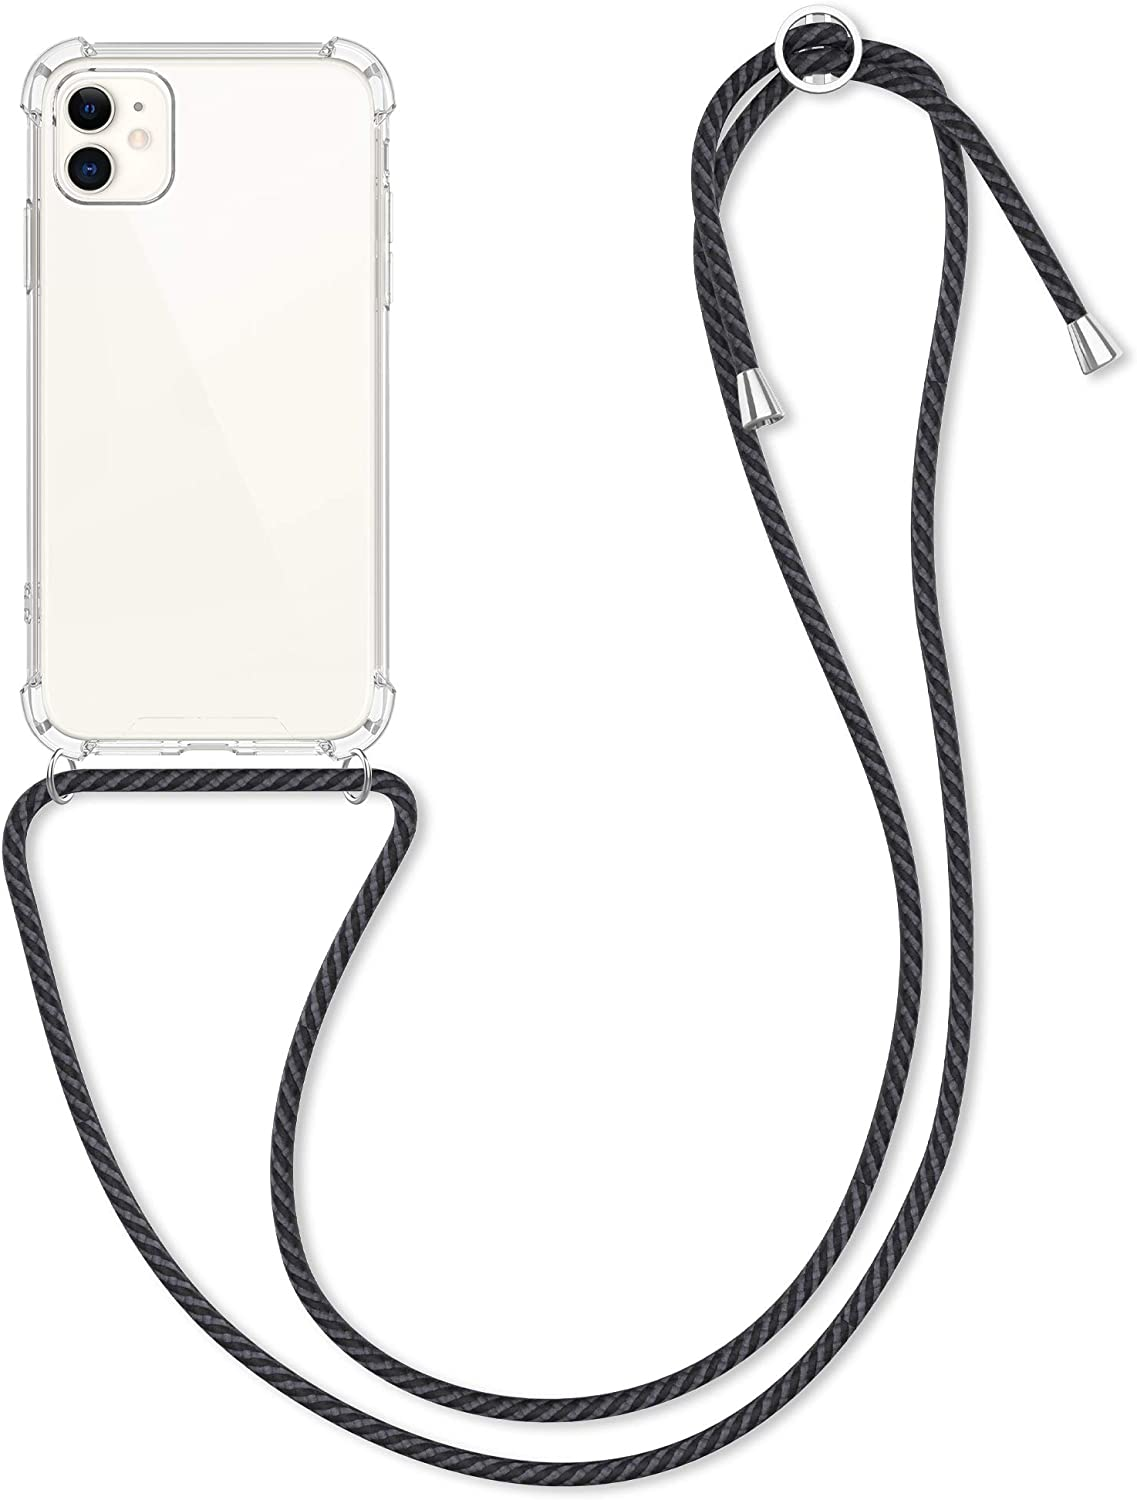 kwmobile Crossbody Case Compatible with Apple iPhone 11 - Case Clear TPU Phone Cover w/Lanyard Cord Strap - Transparent/Anthracite/Black